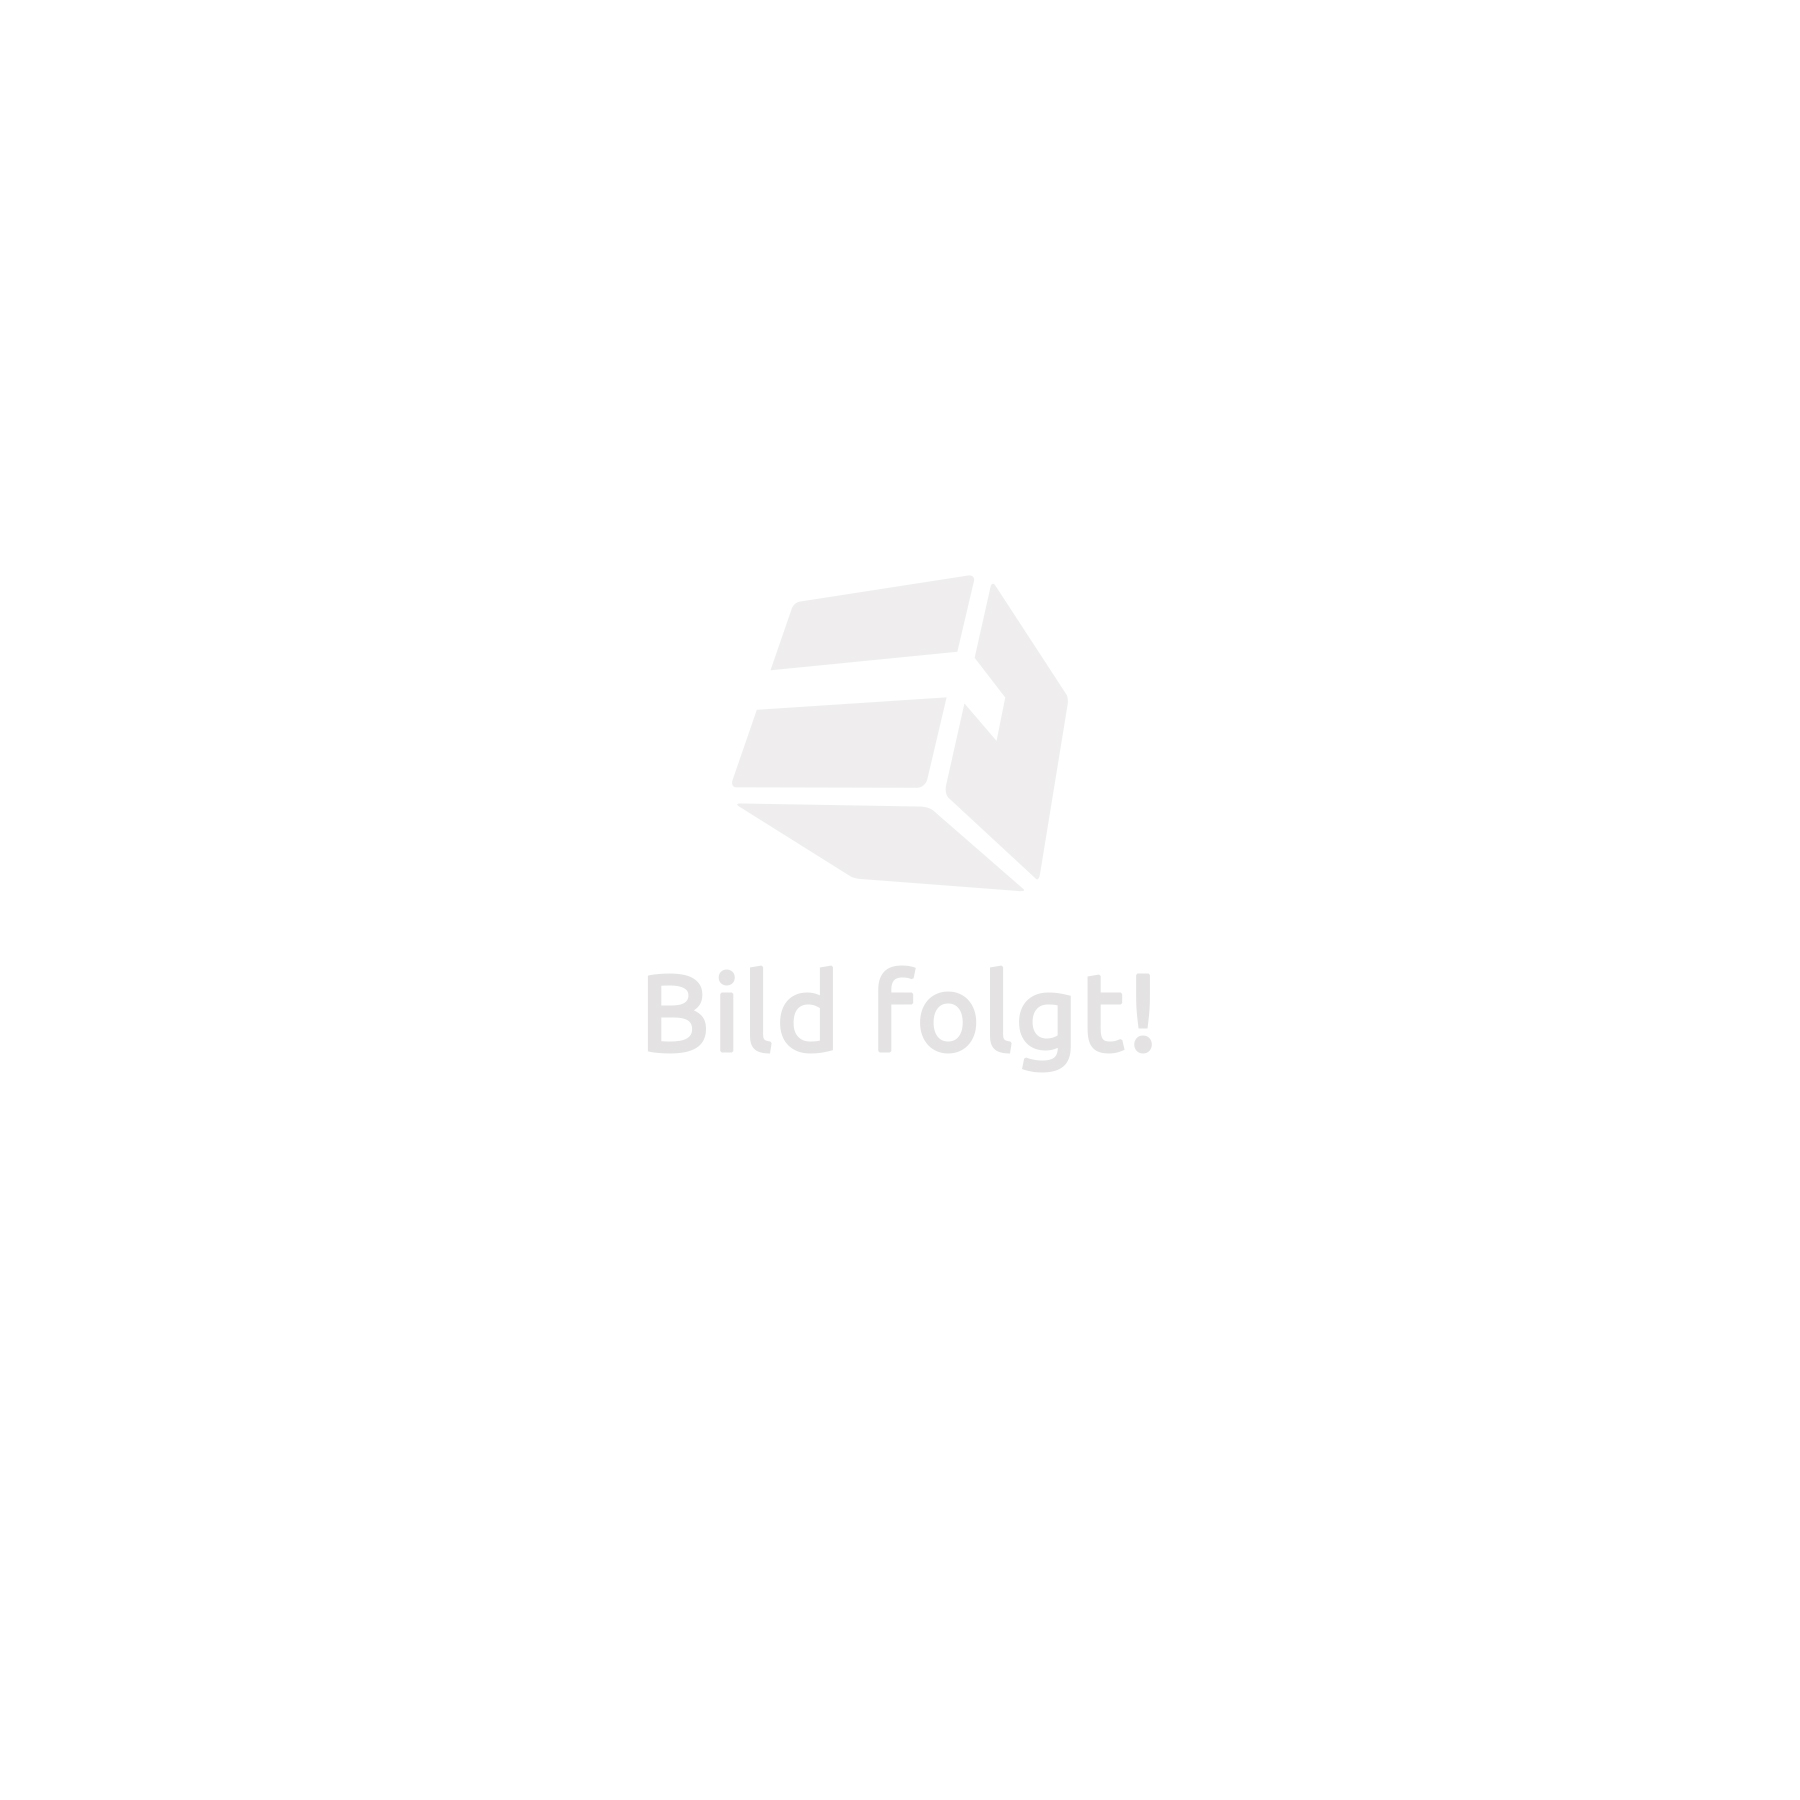 Chaise style scandinave TANJA gris